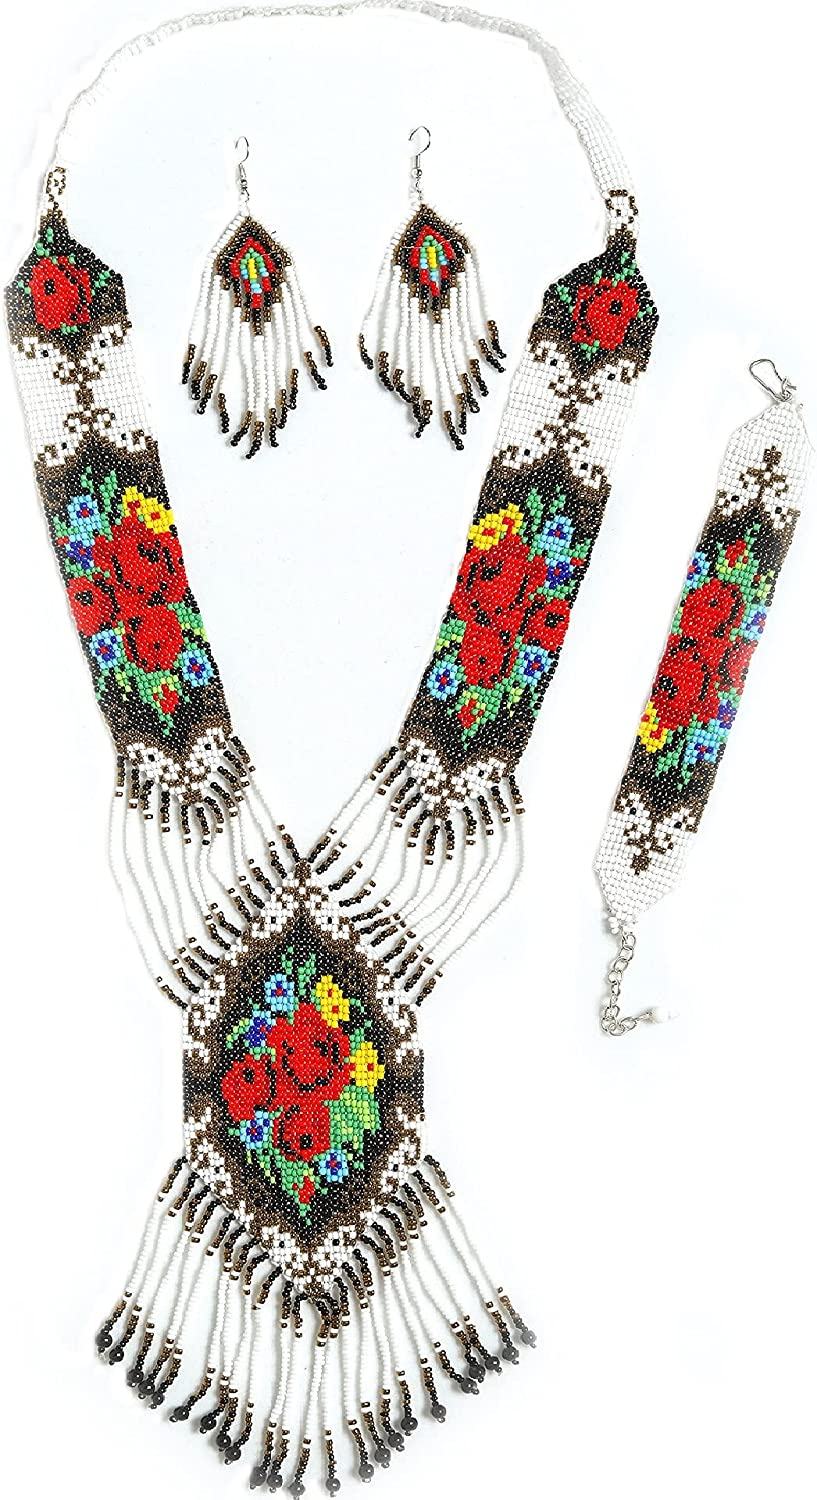 Tahera Native American Jewelry for Women statement seed beaded white western handmade necklace, earrings and bracelet.Bohemian colorful summer bead bib set for women.